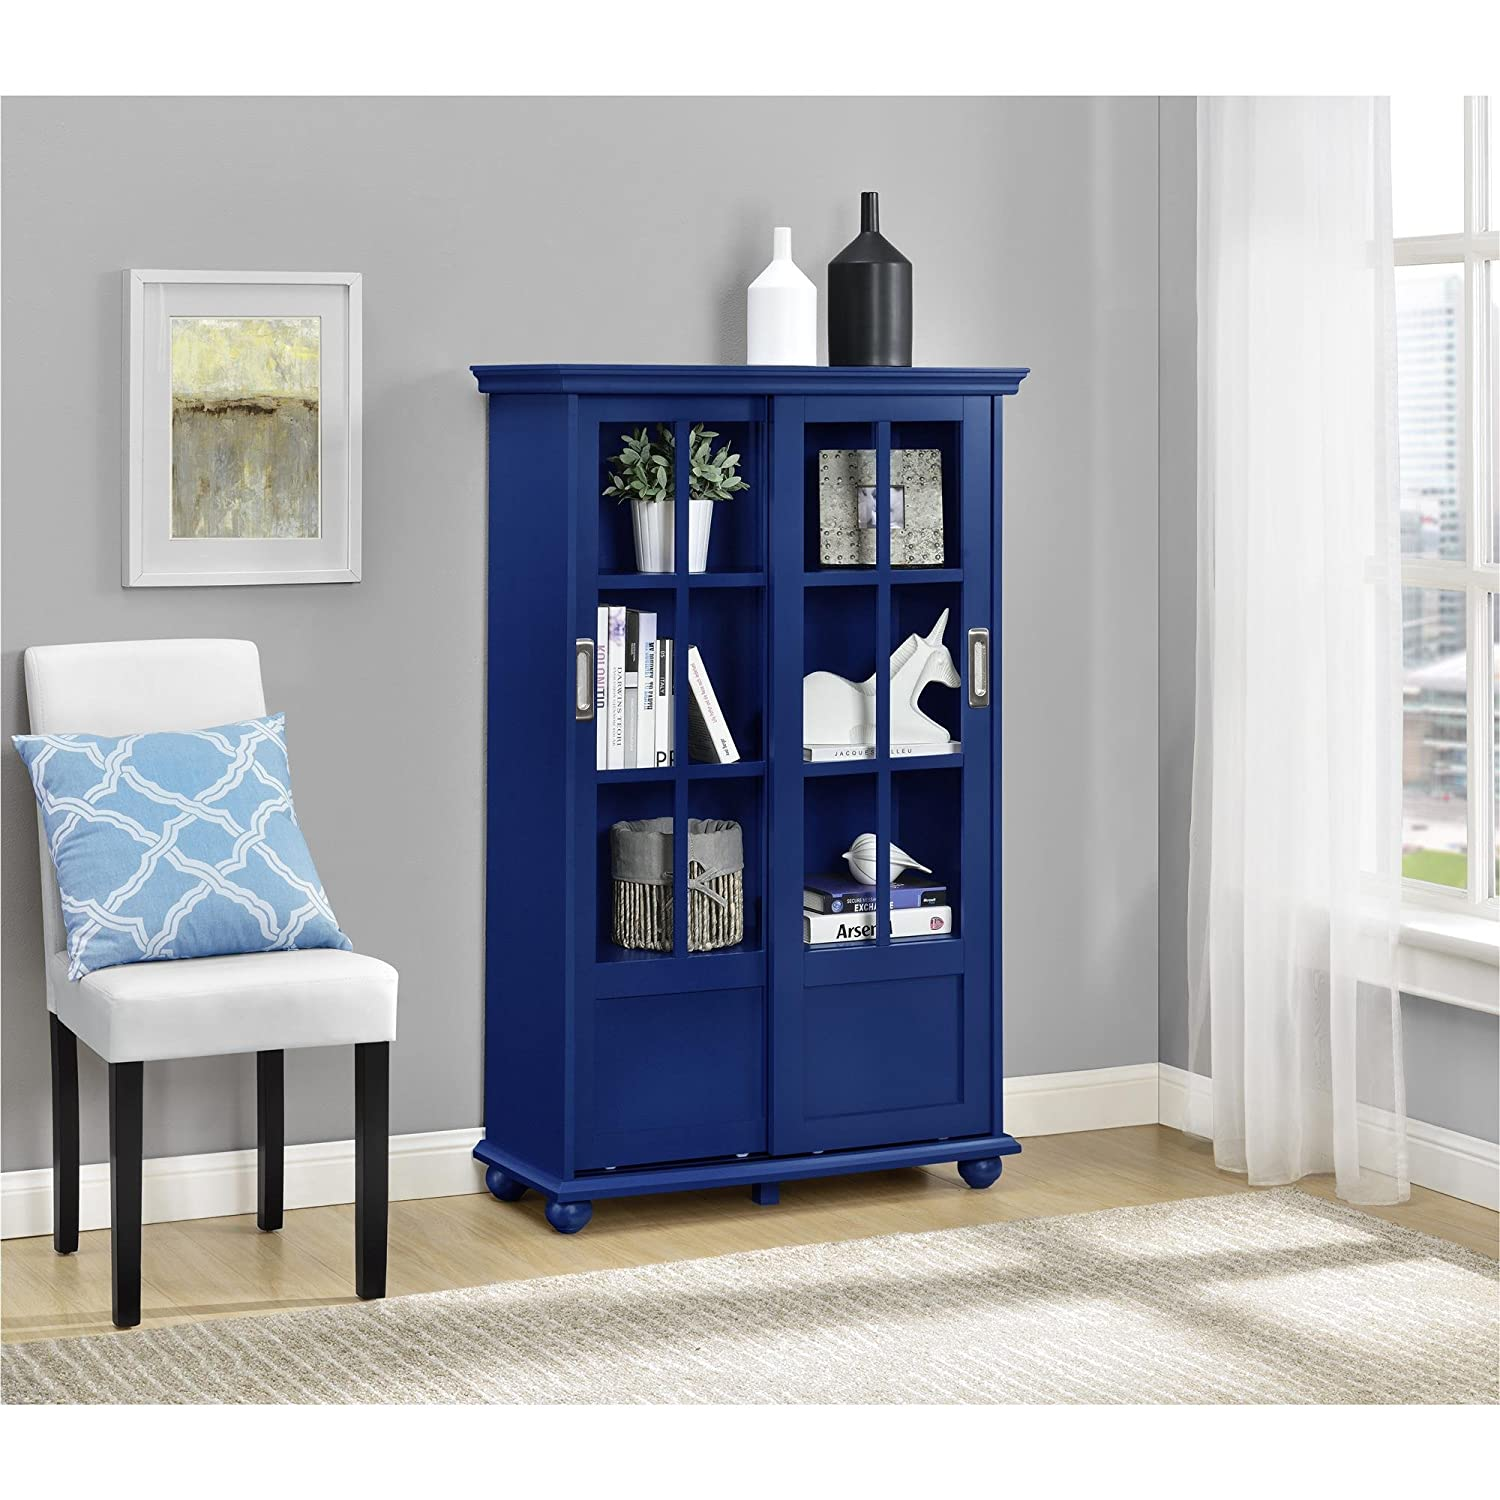 Great Amazon.com: Ameriwood Home Aaron Lane Bookcase Sliding Glass Doors, Blue:  Kitchen U0026 Dining